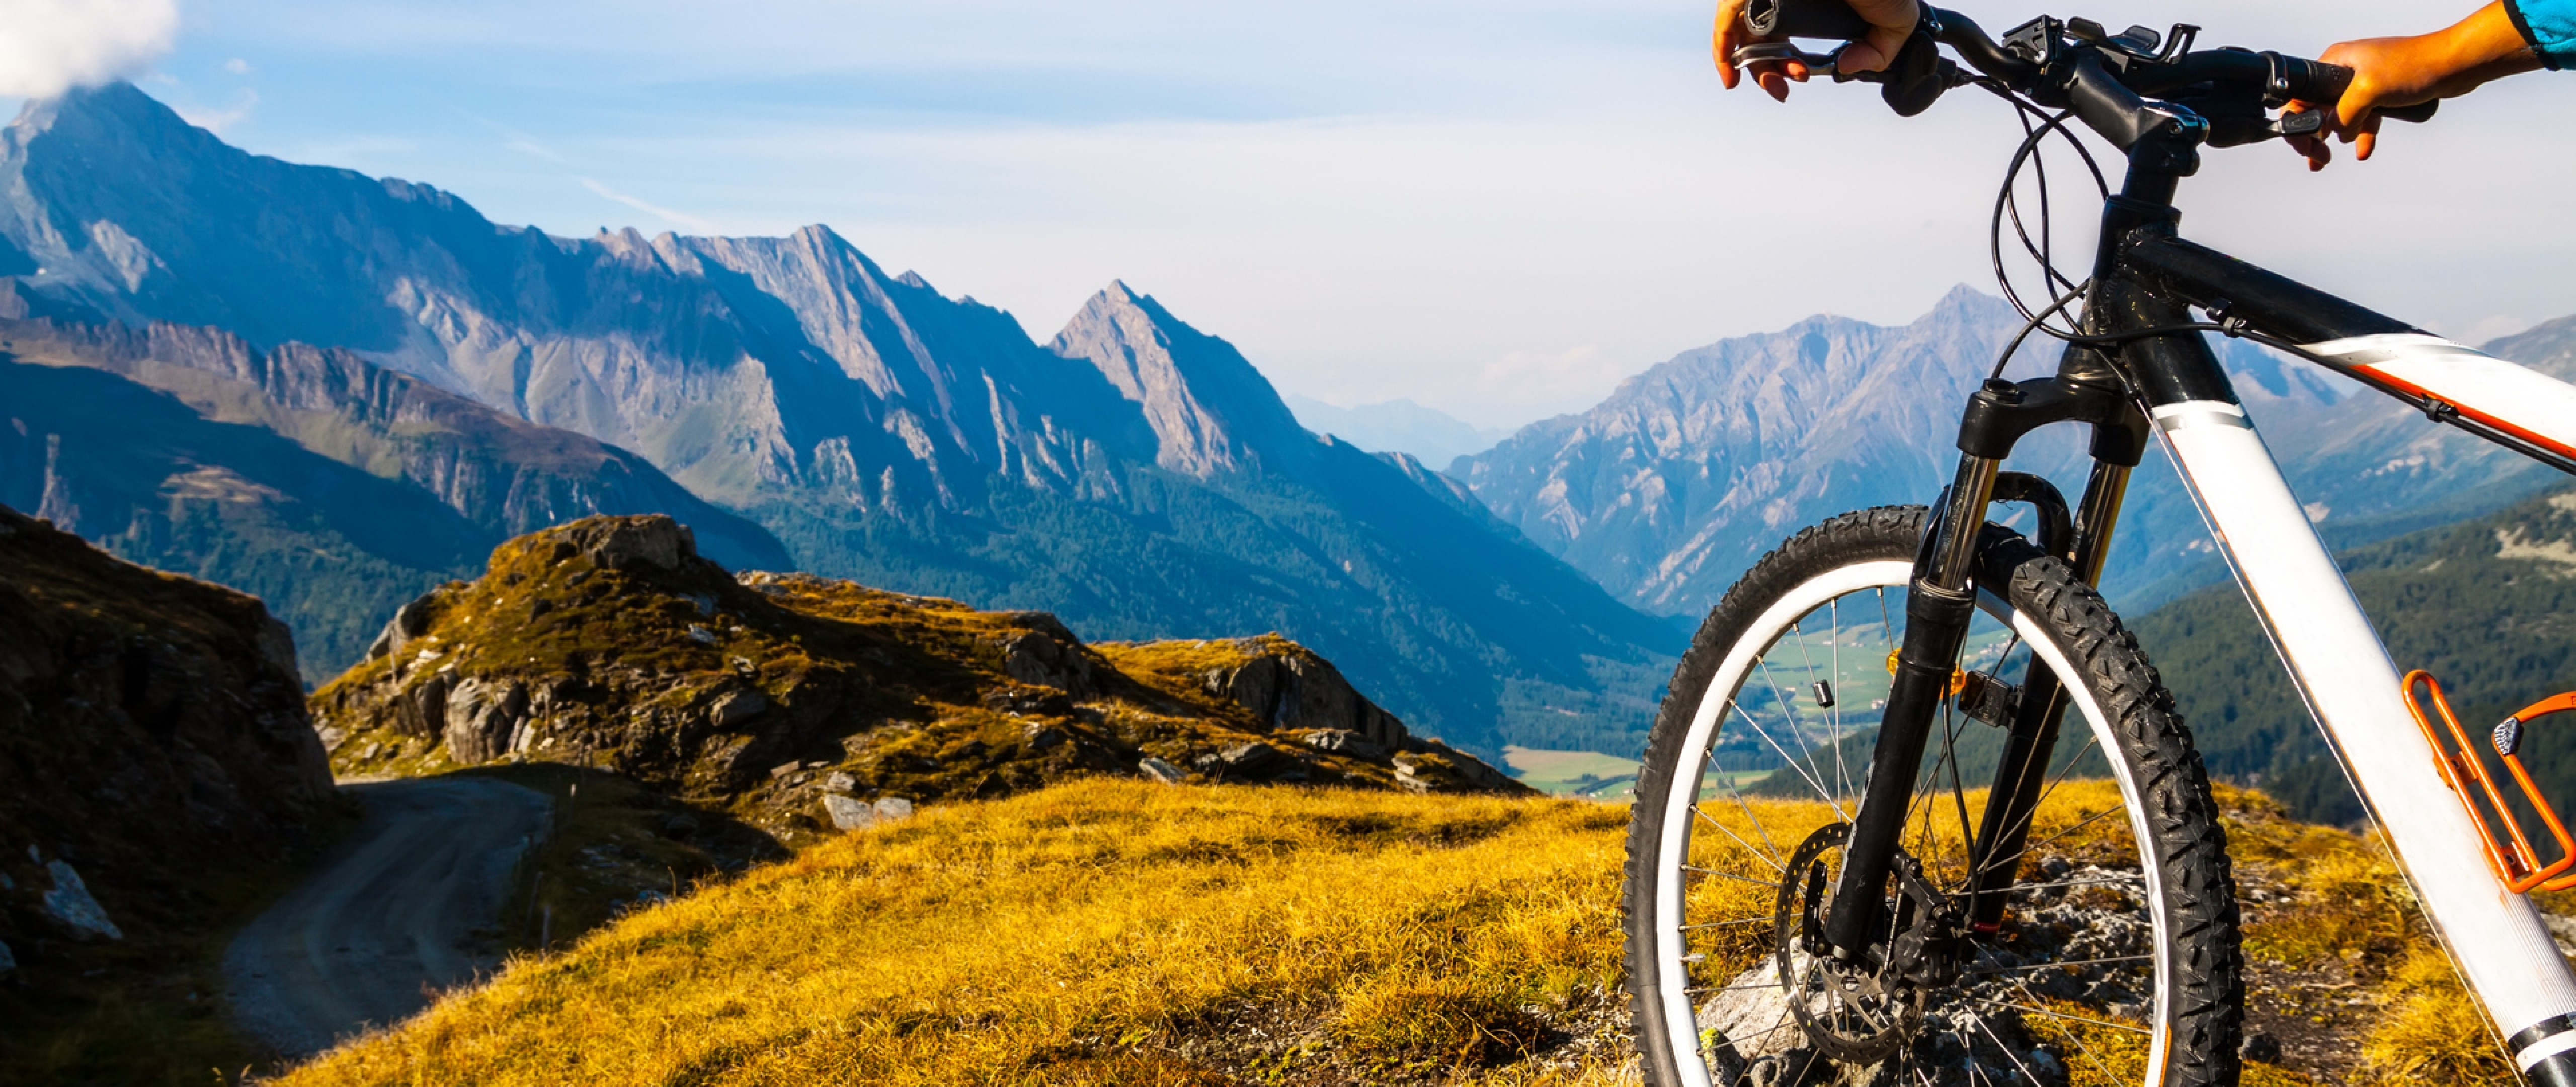 Hd Mtb Wallpaper Posted By Sarah Cunningham